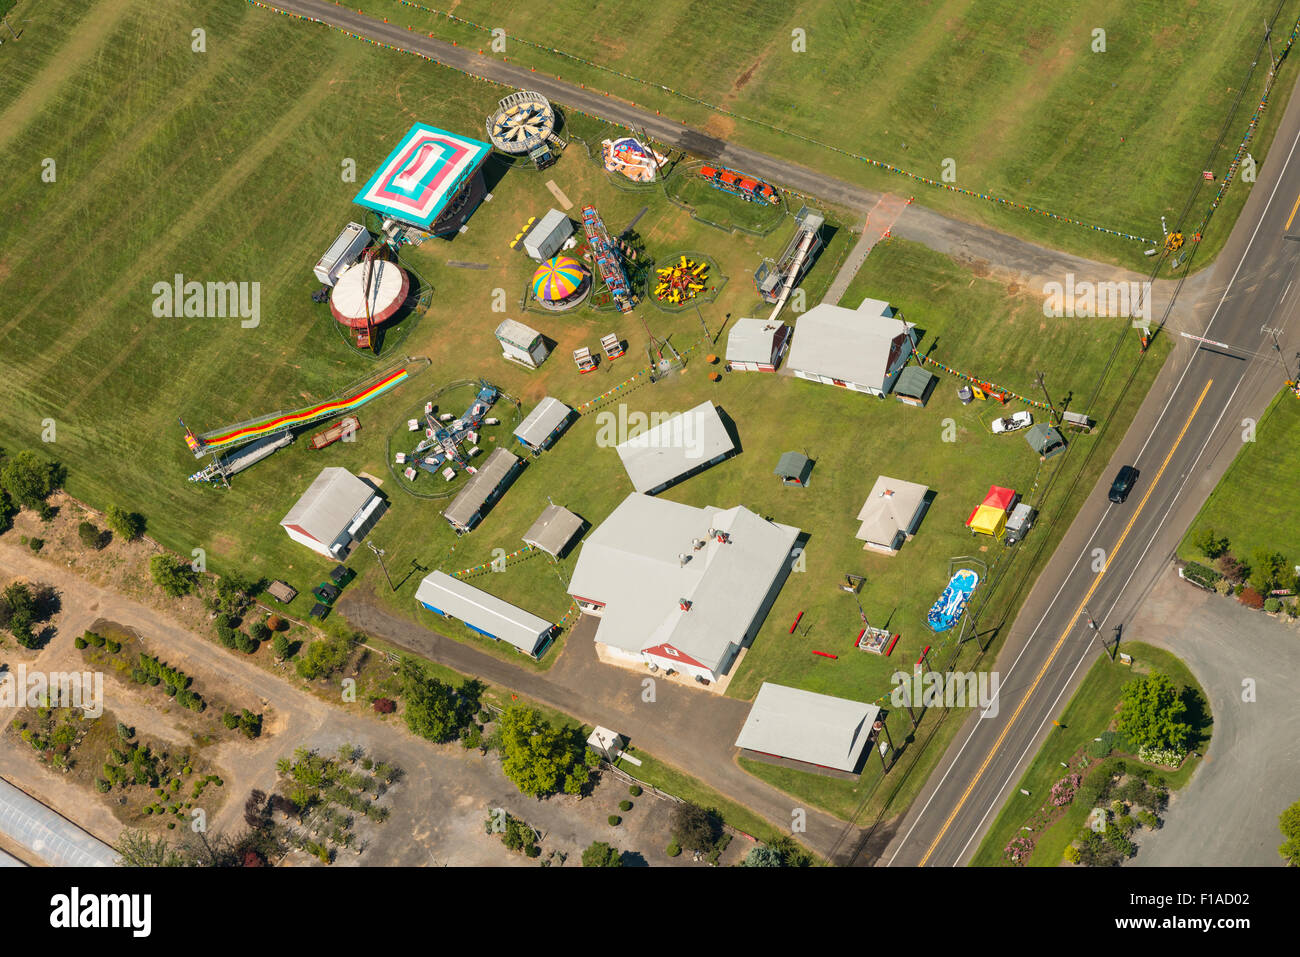 Aerial View Of Traveling Carnival, New Jersey USA - Stock Image